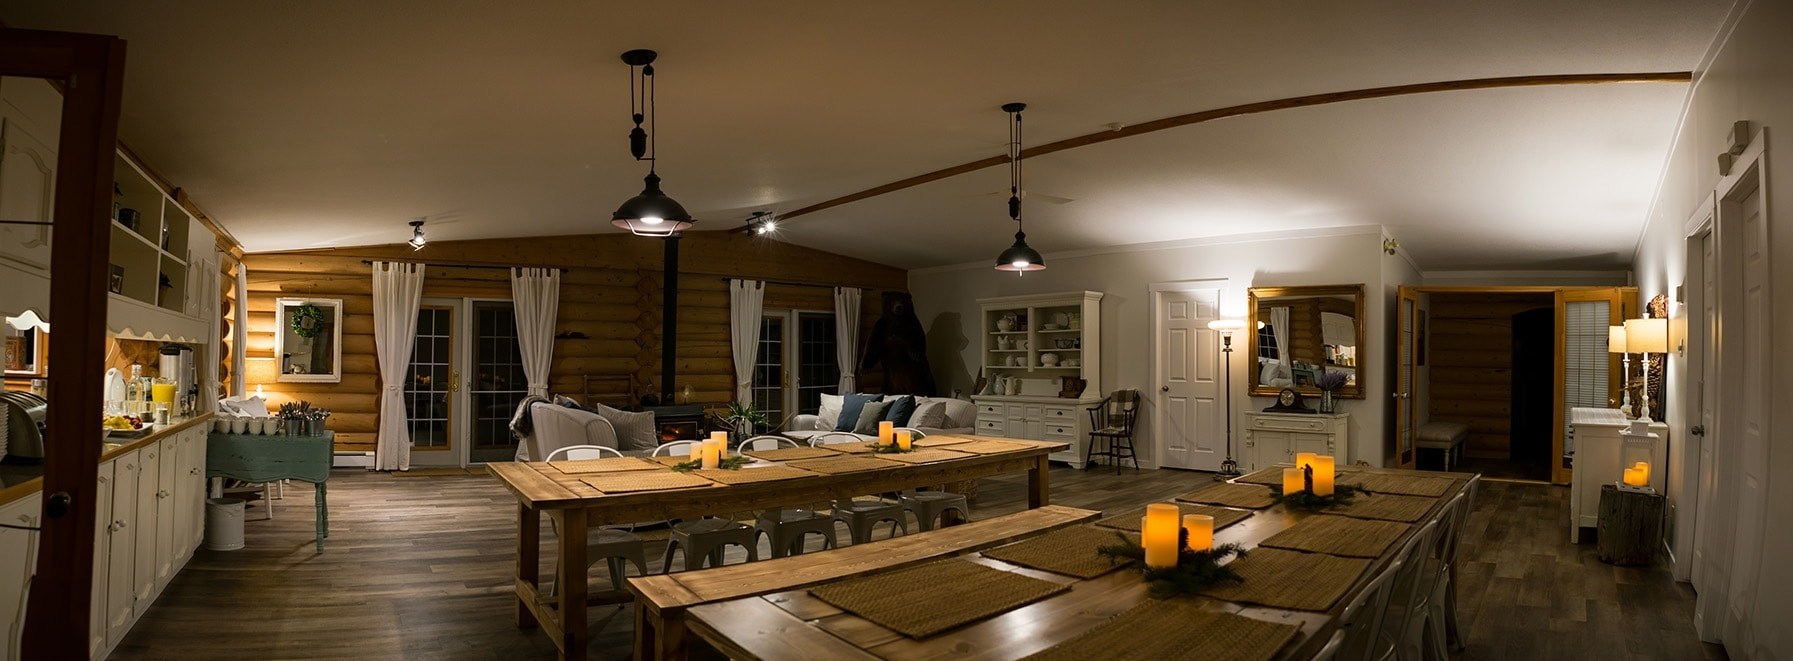 Whitewater Lodge in Golden, BC